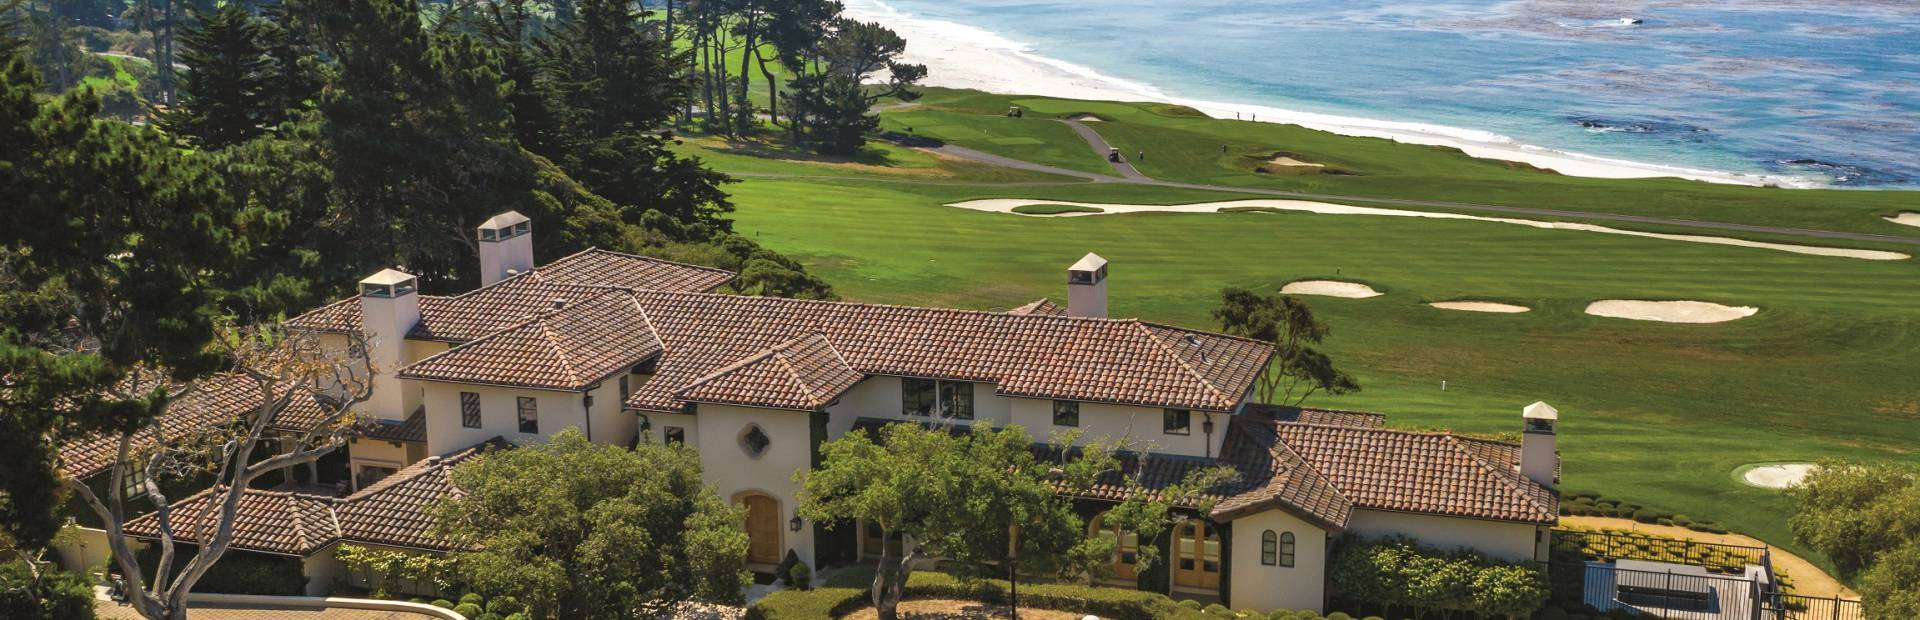 Pebble Beach, California, United States, 6 Bedrooms Bedrooms, ,6 BathroomsBathrooms,Residential,For Sale,803013